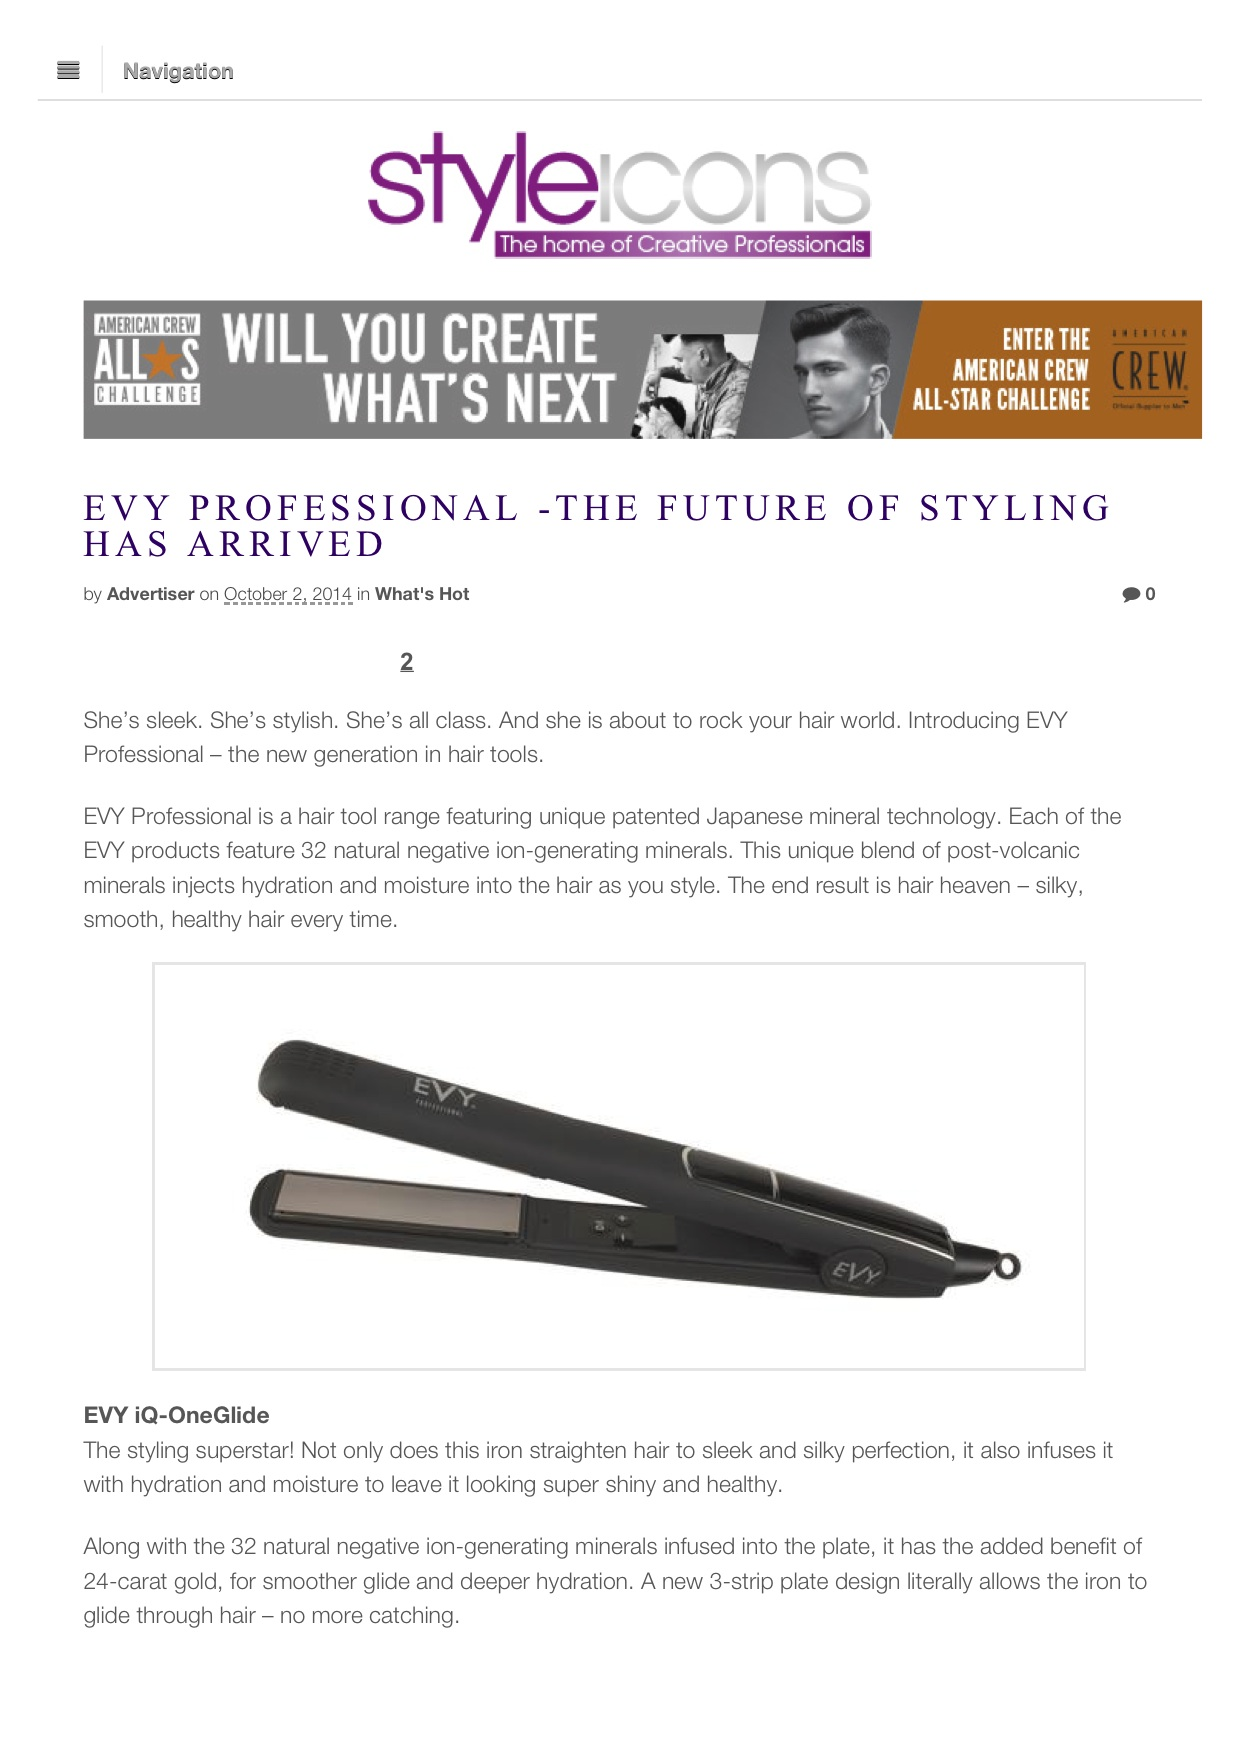 EVY Professional -The Future of Styling Has Arrived | Styleicons